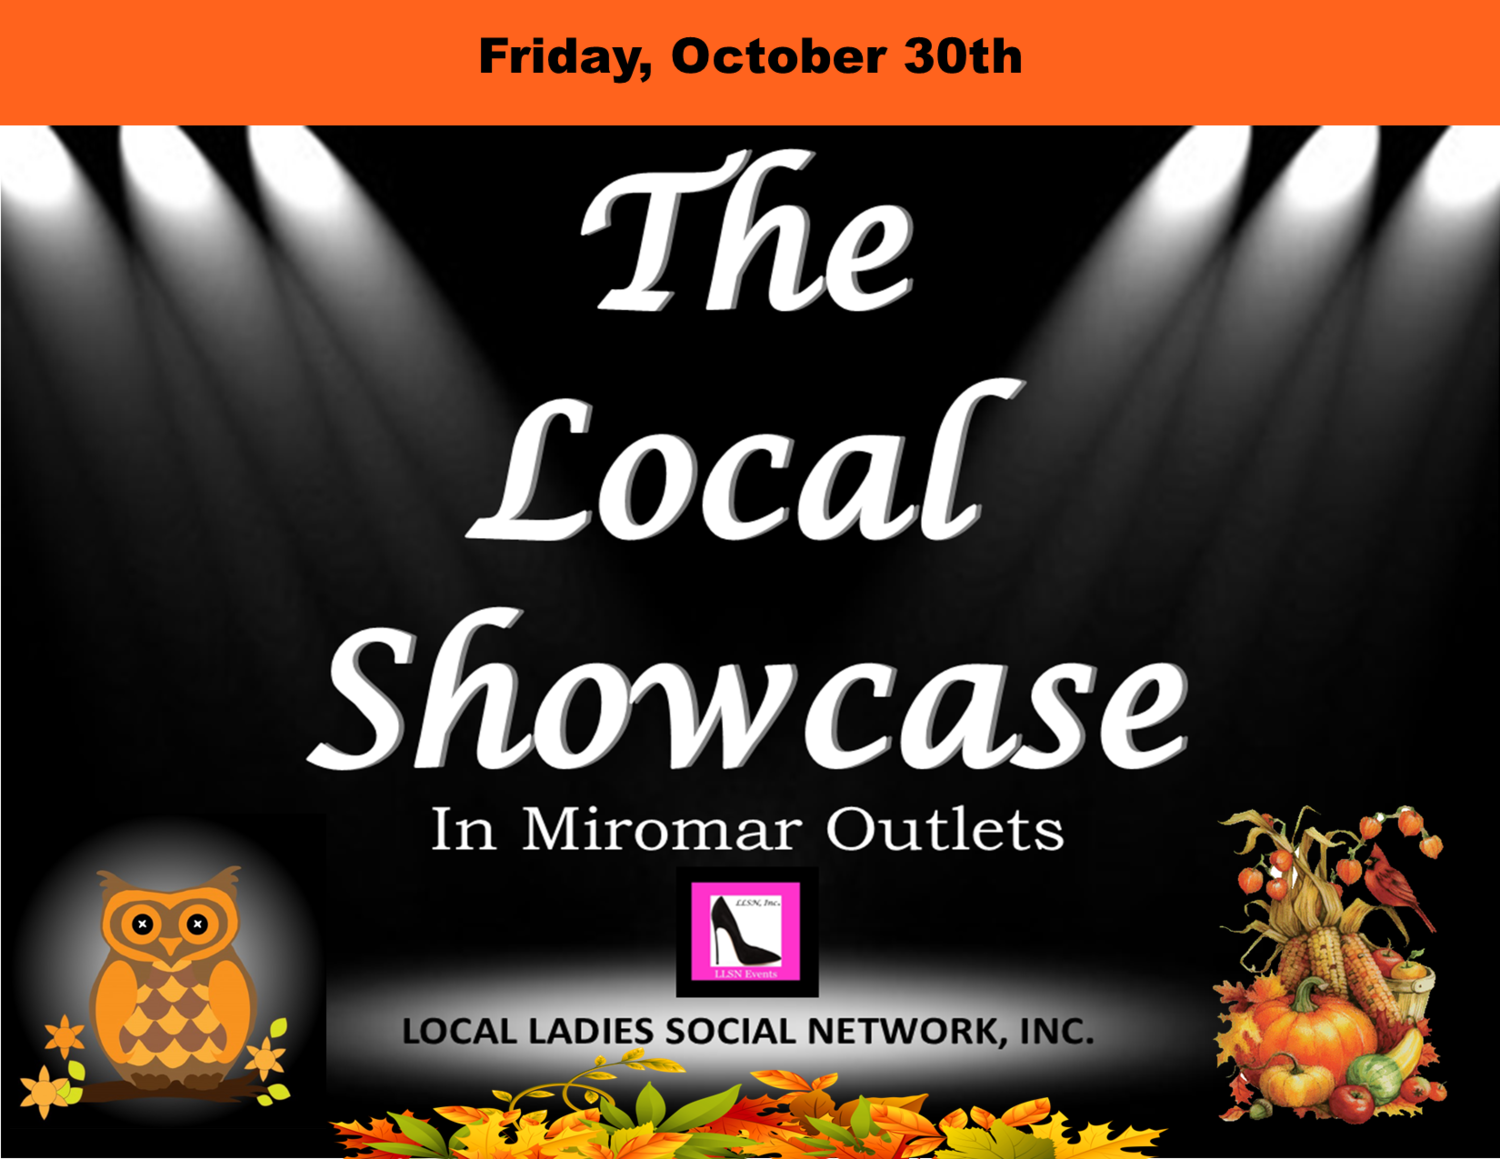 Friday, October 30th 11am-7pm